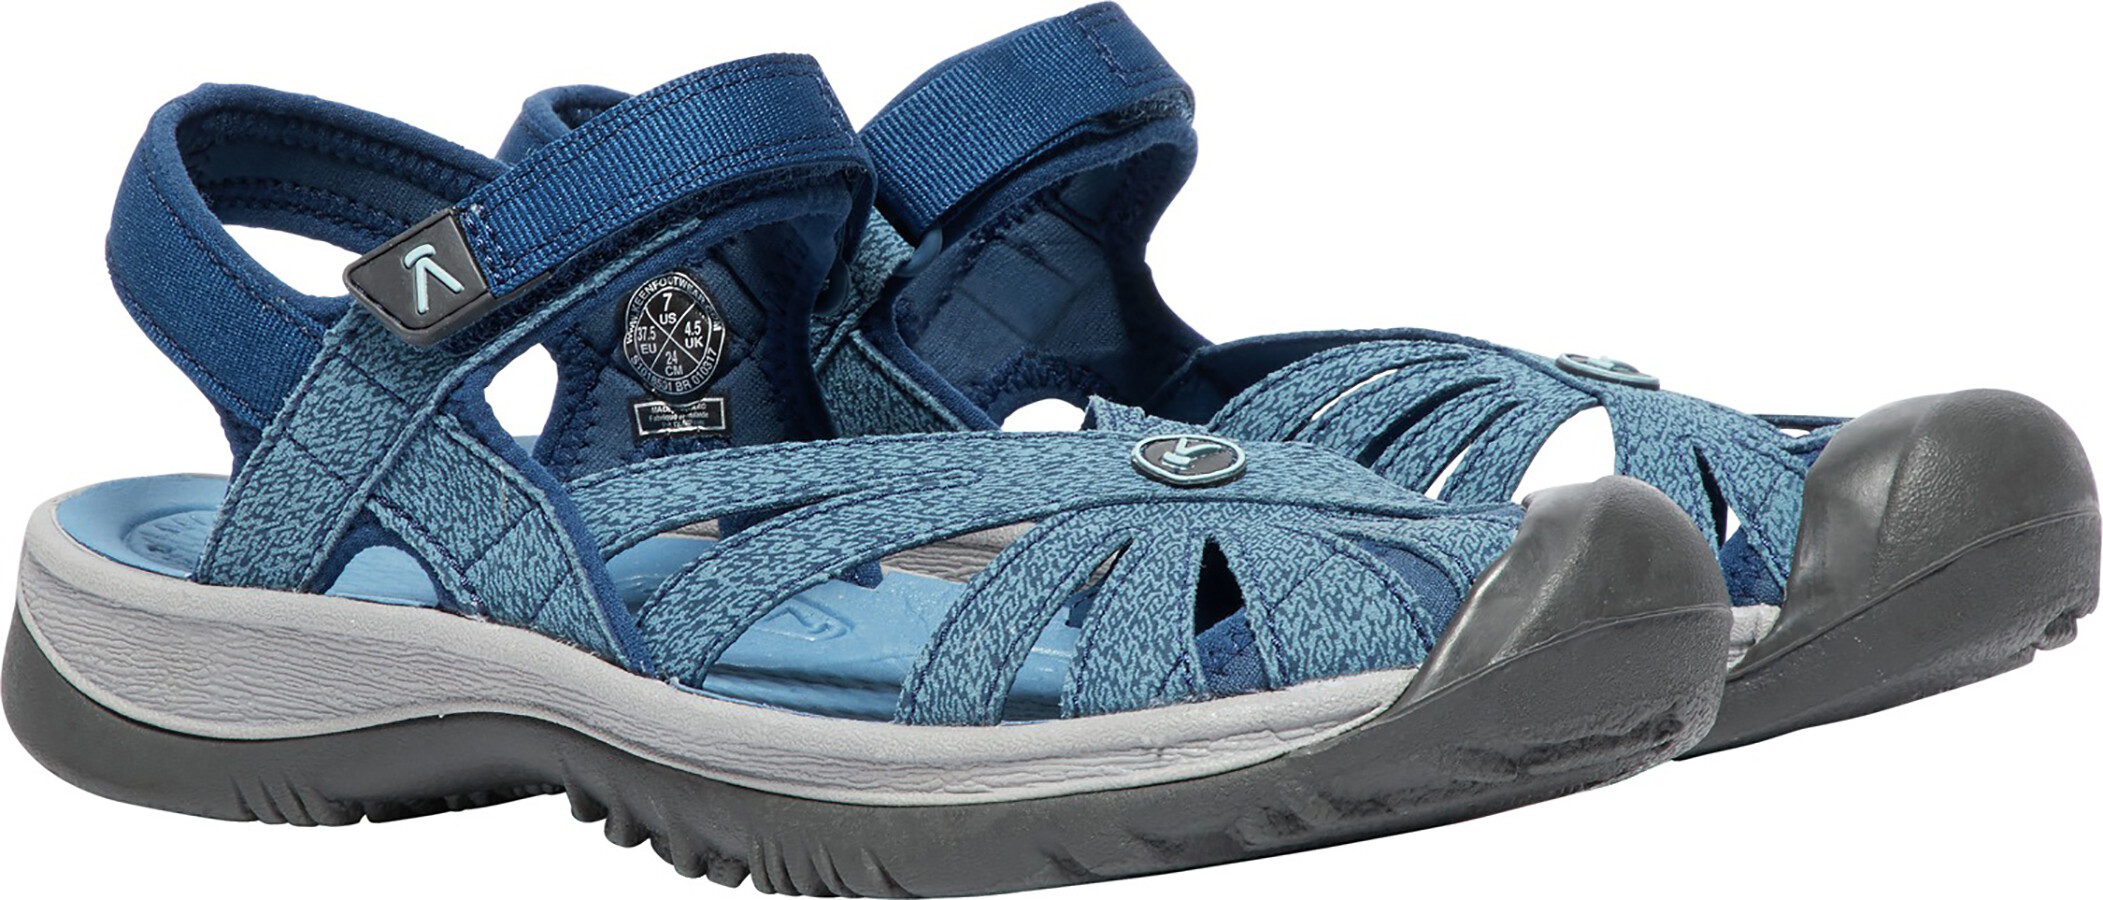 4596a34861f9 Keen Rose Sandals Women blue at Addnature.co.uk